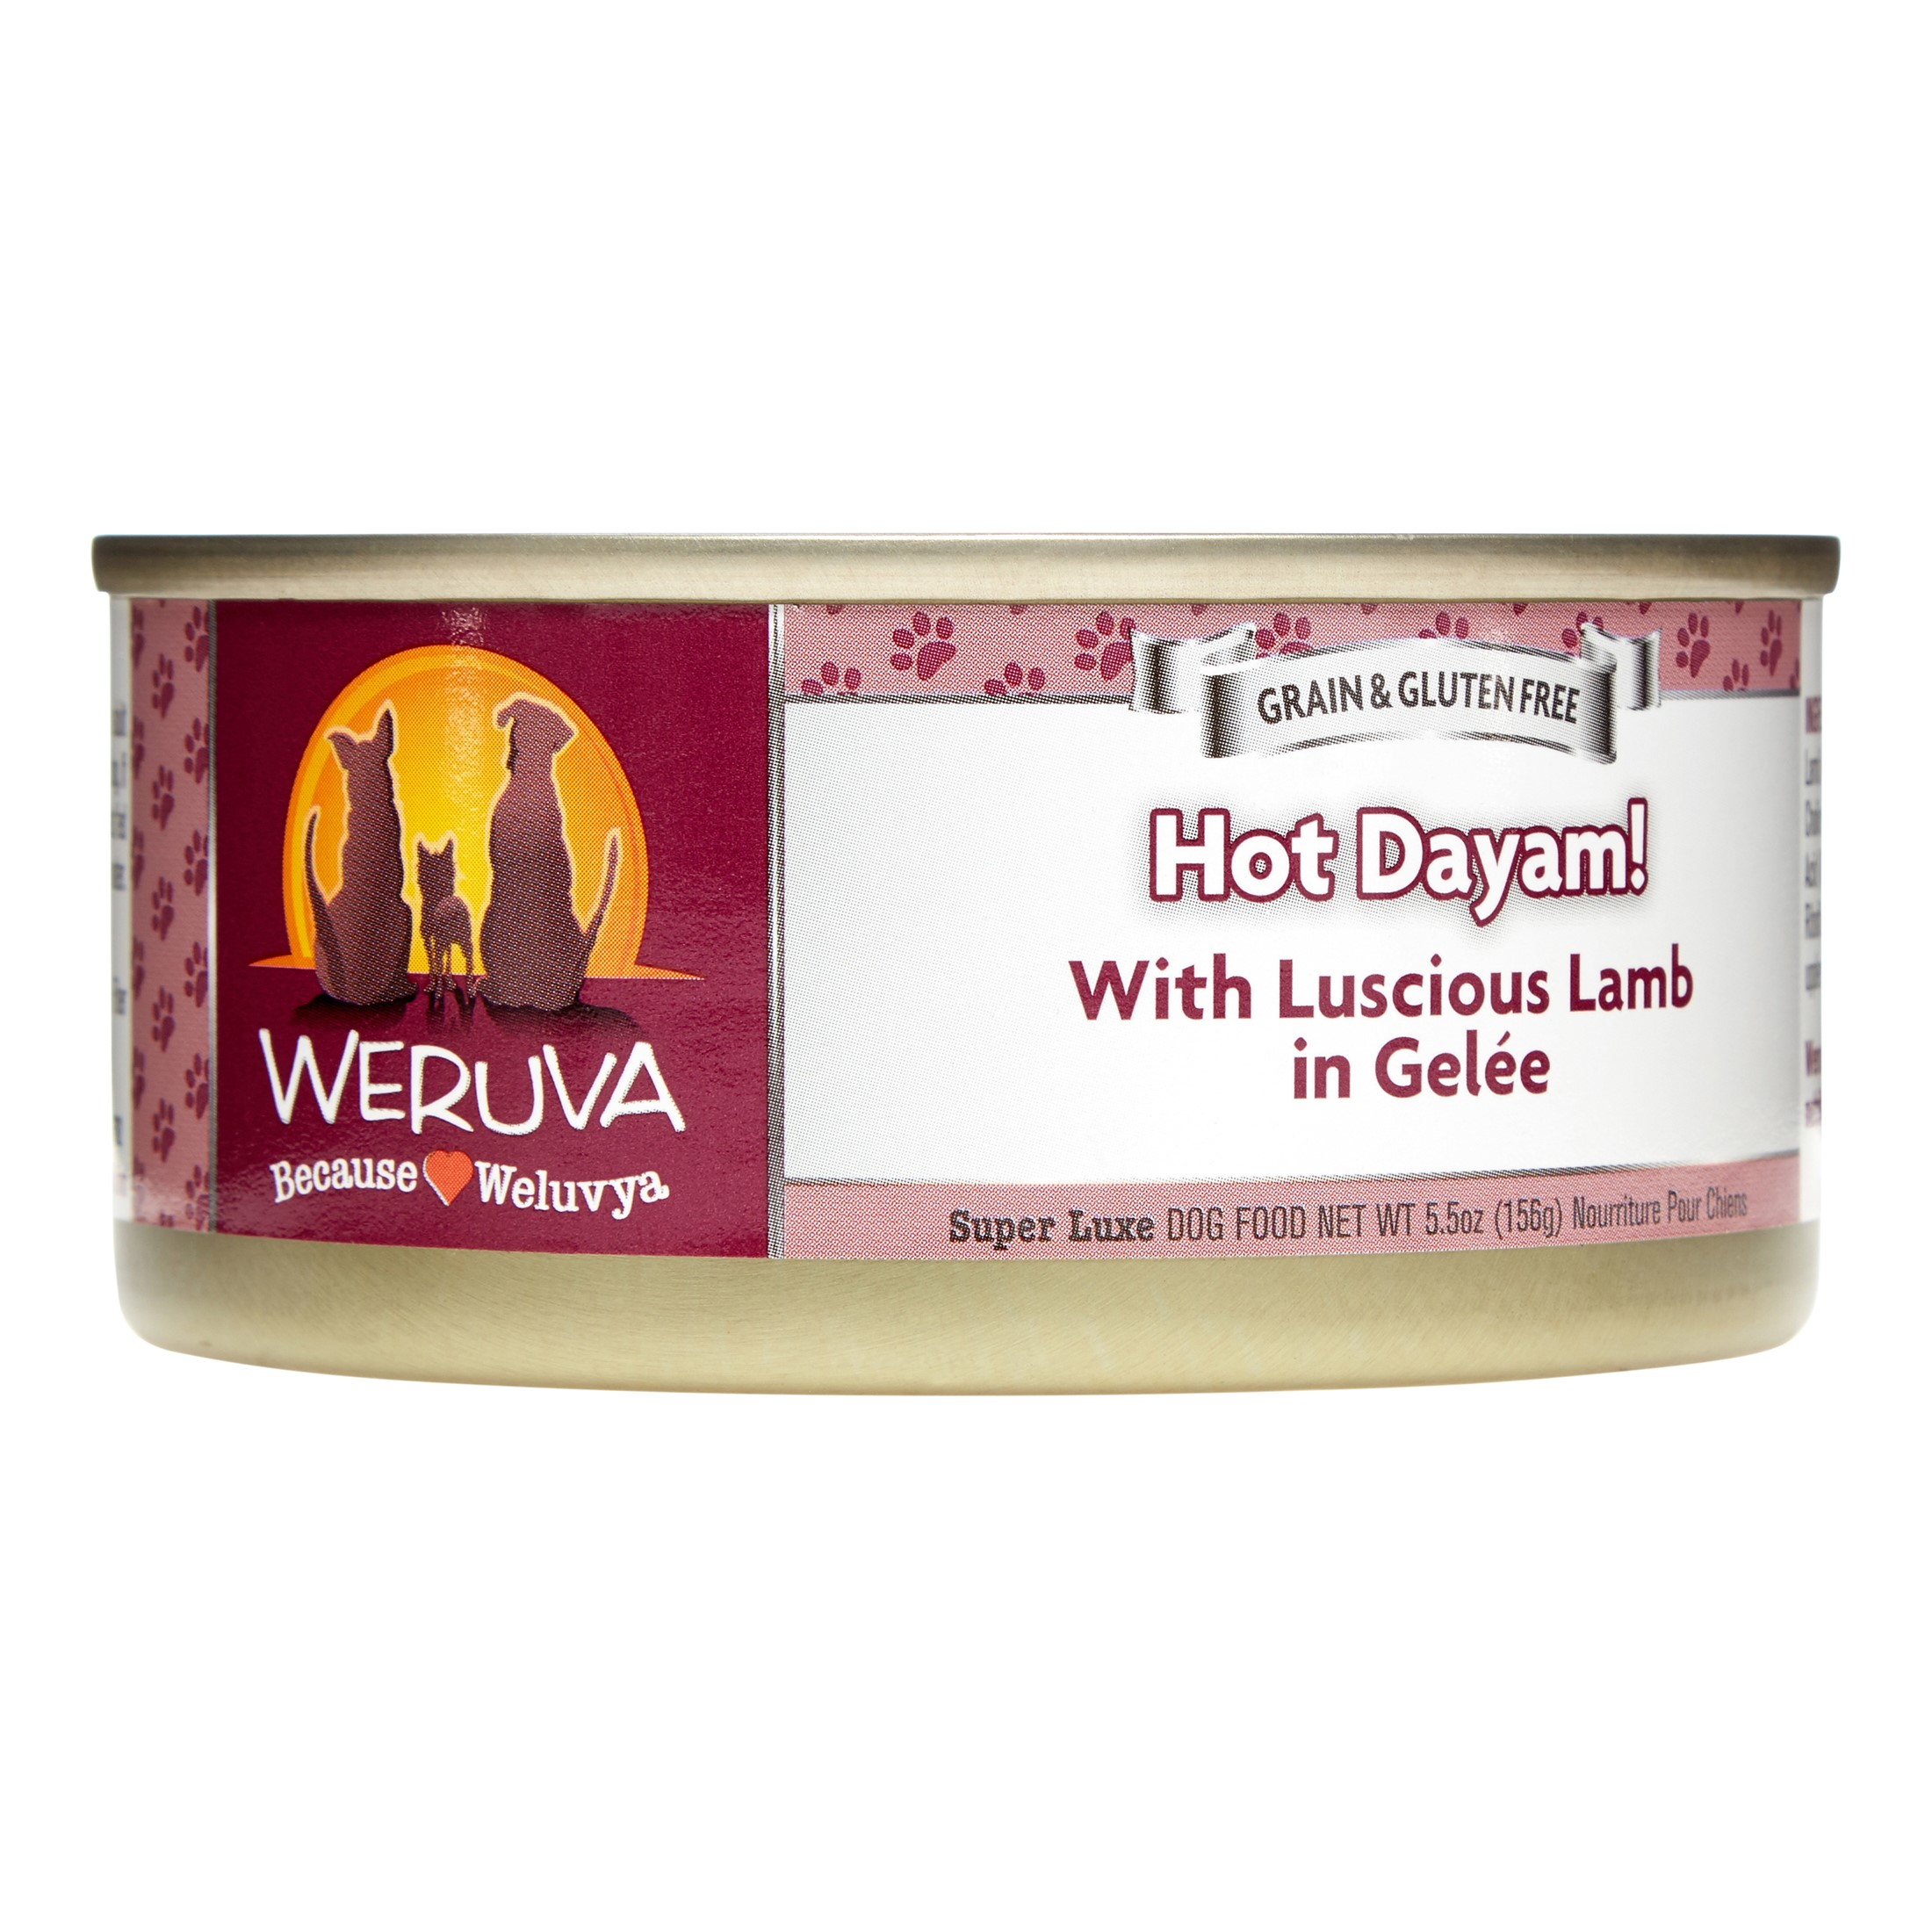 Weruva Hot Dayum! Grain-Free Chicken & Lamb in Gelee Wet Dog Food, 5.5 Oz